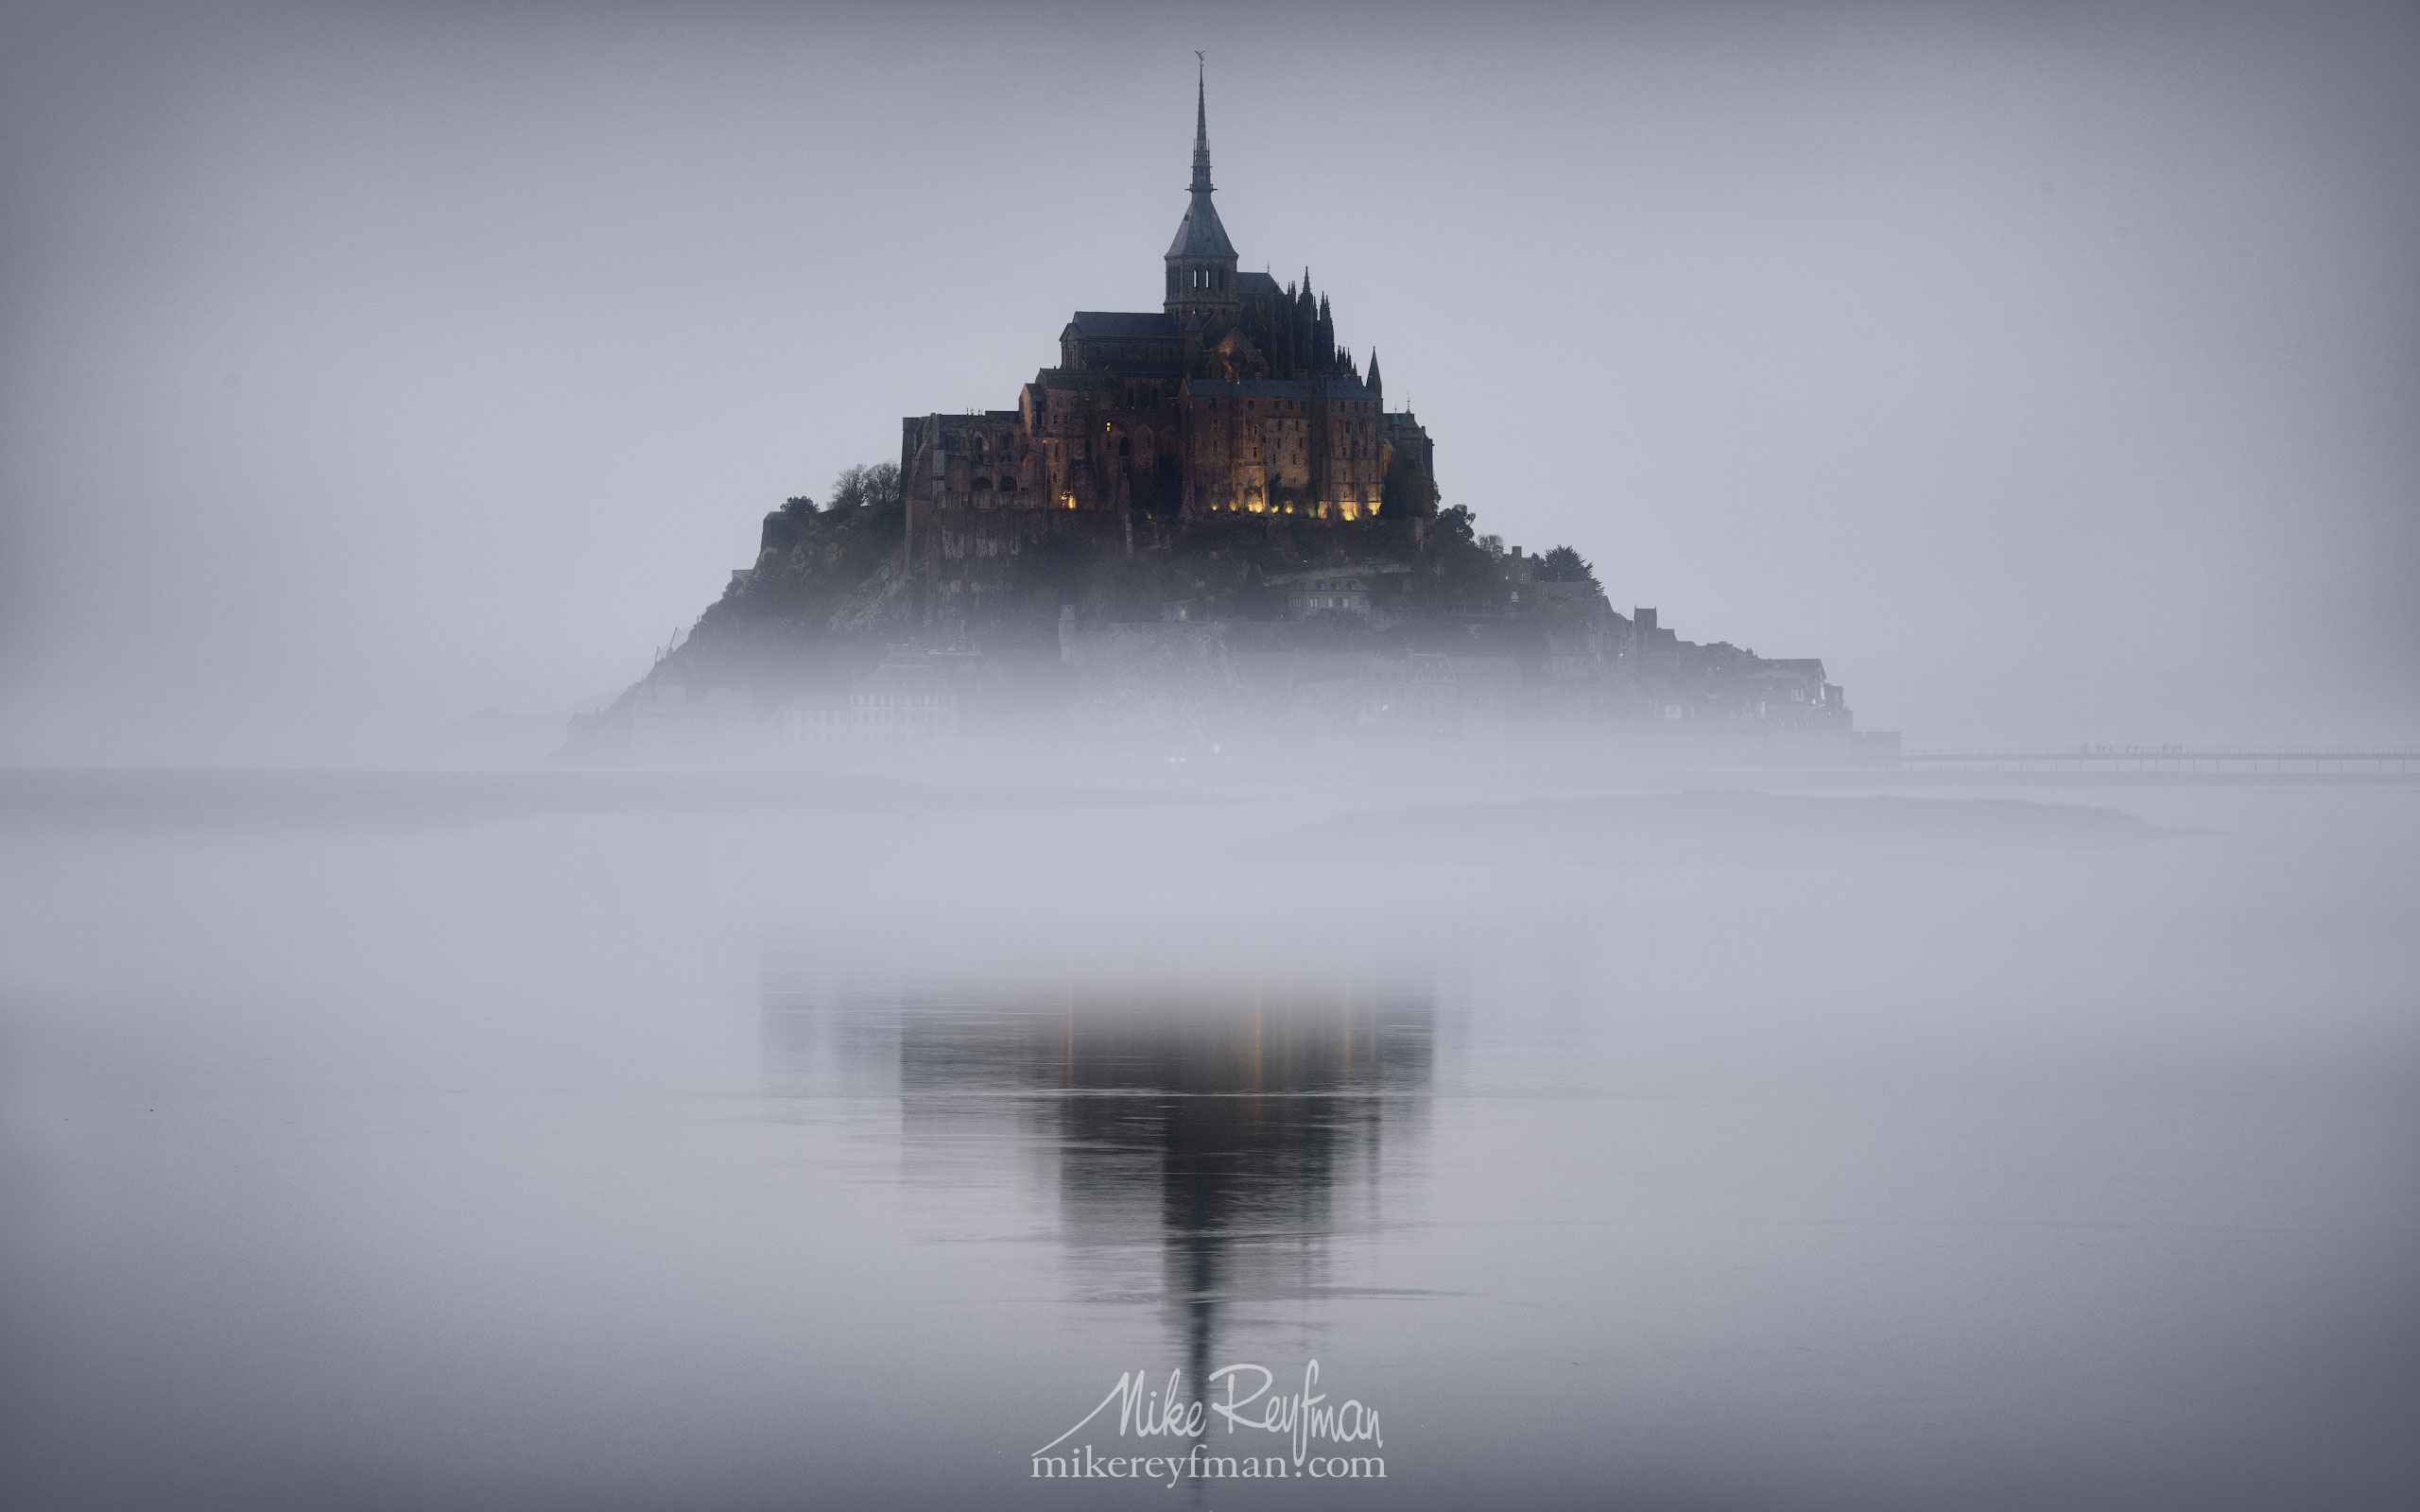 Le Mont-Saint-Michel Island and Benedictine Abbey. Normandy, France SM_MR50A1073 - Le Mont Saint Michel Island and Benedictine Abbey, Normandy, France - Mike Reyfman Photography